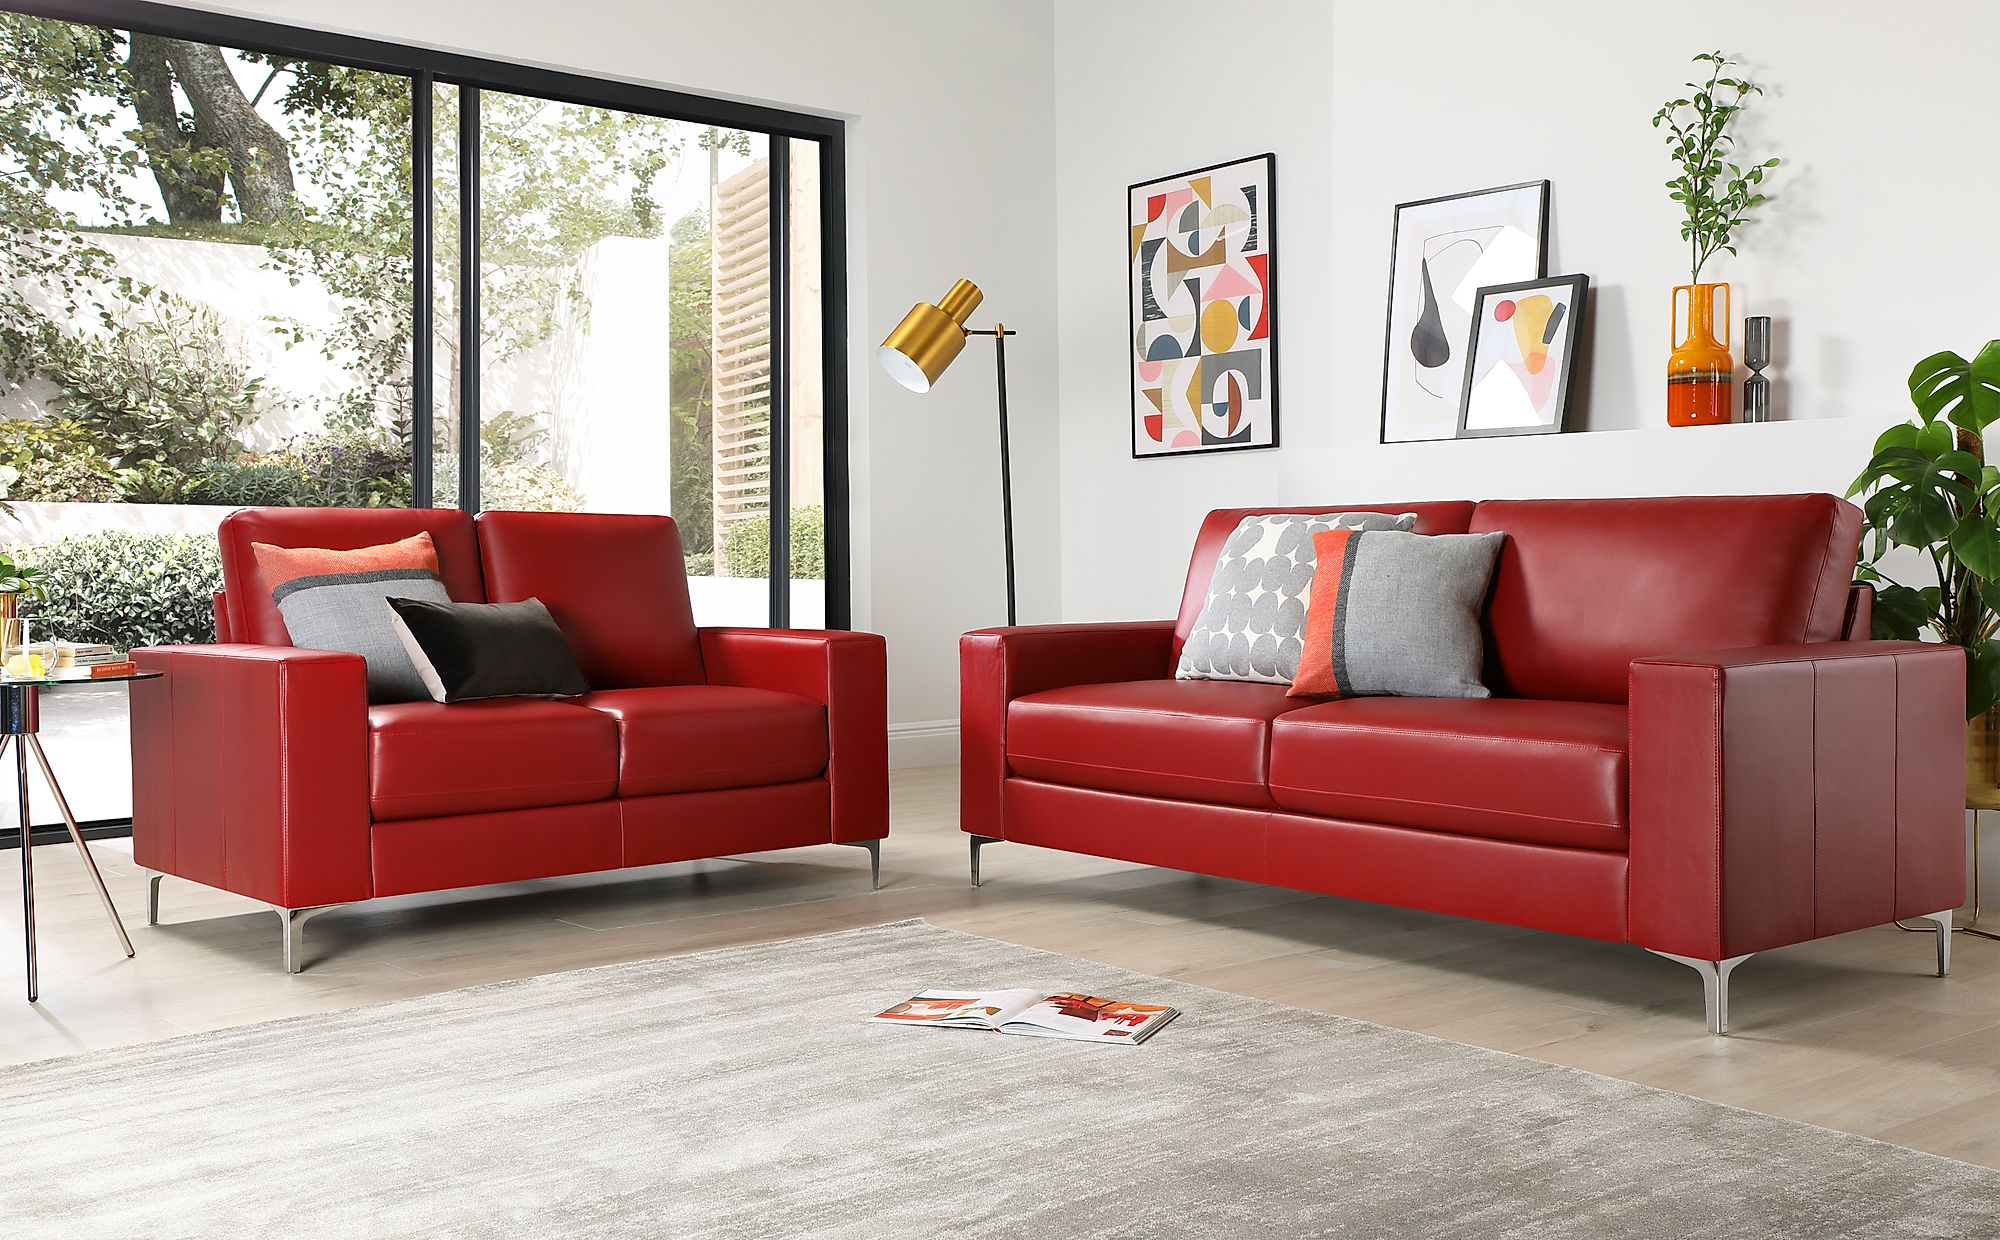 Baltimore Red Leather 3+2 Seater Sofa Set